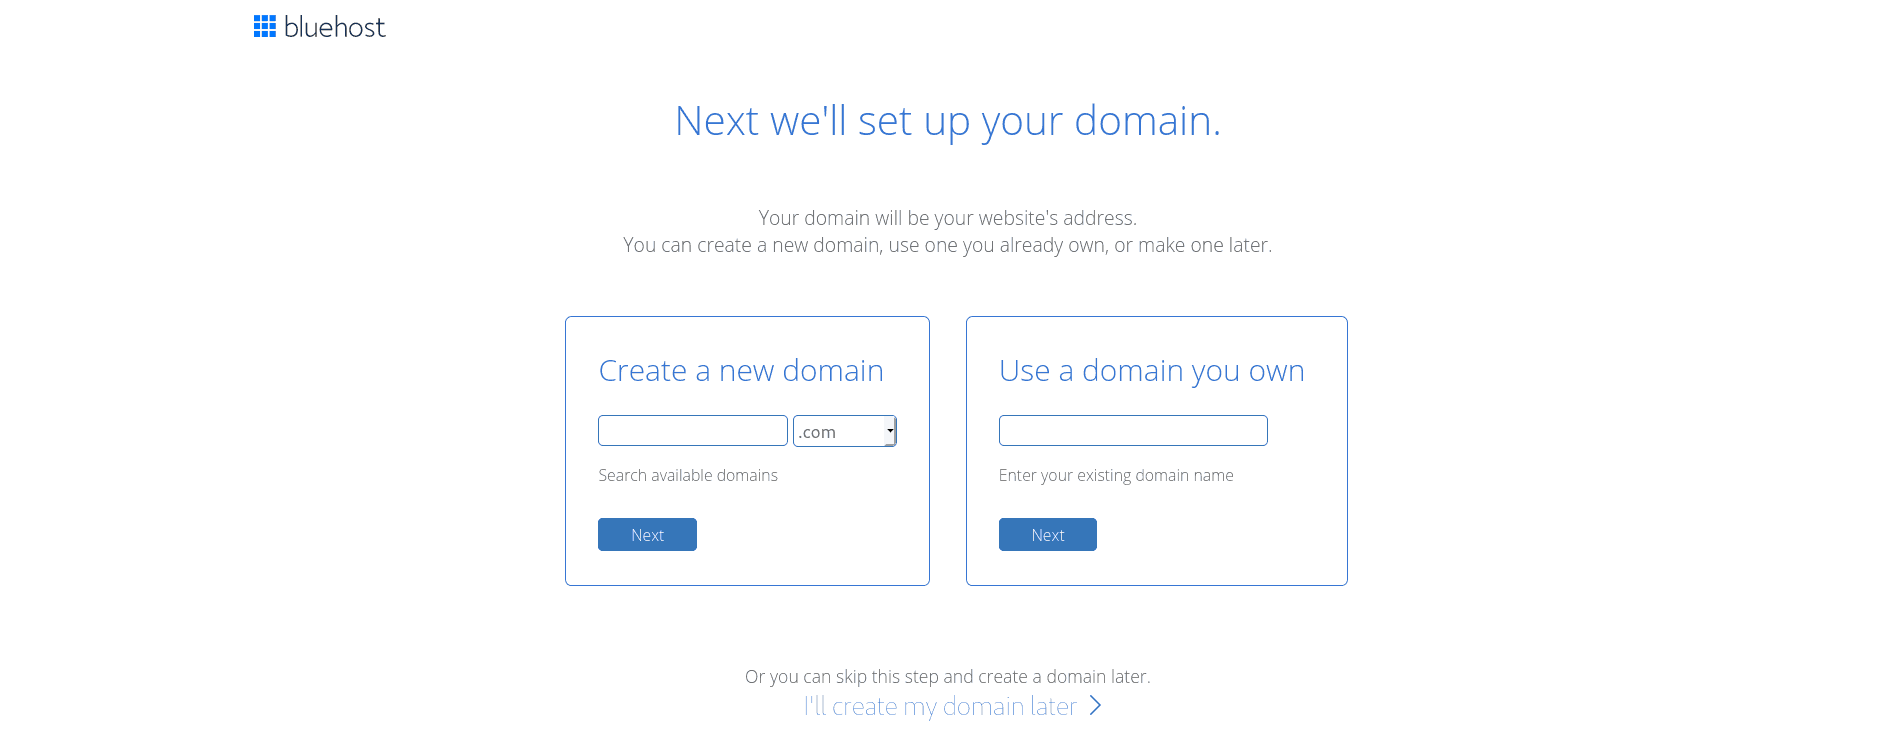 Choose a domain name for your site